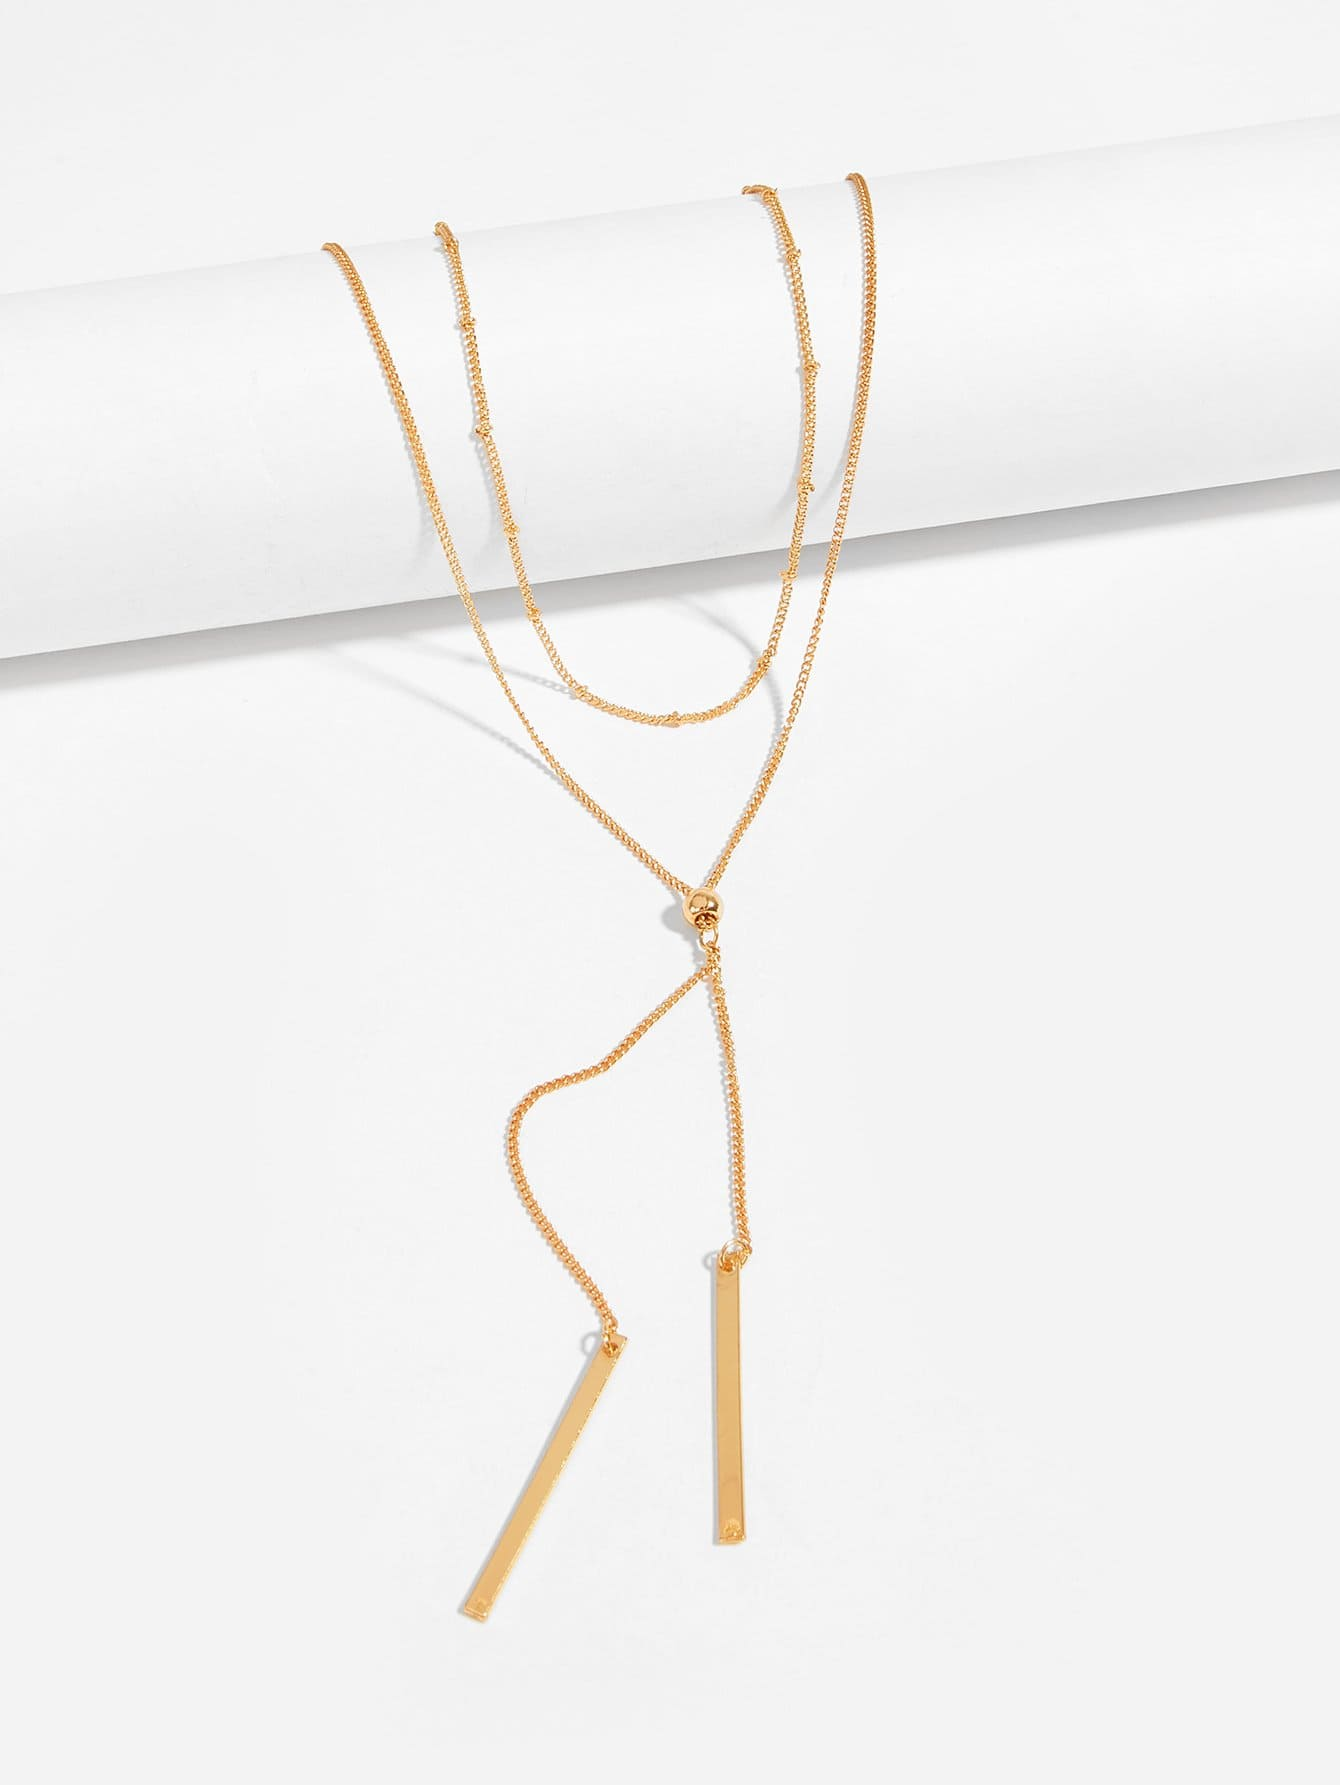 Bar Pendant Lariats Layered Chain Necklace